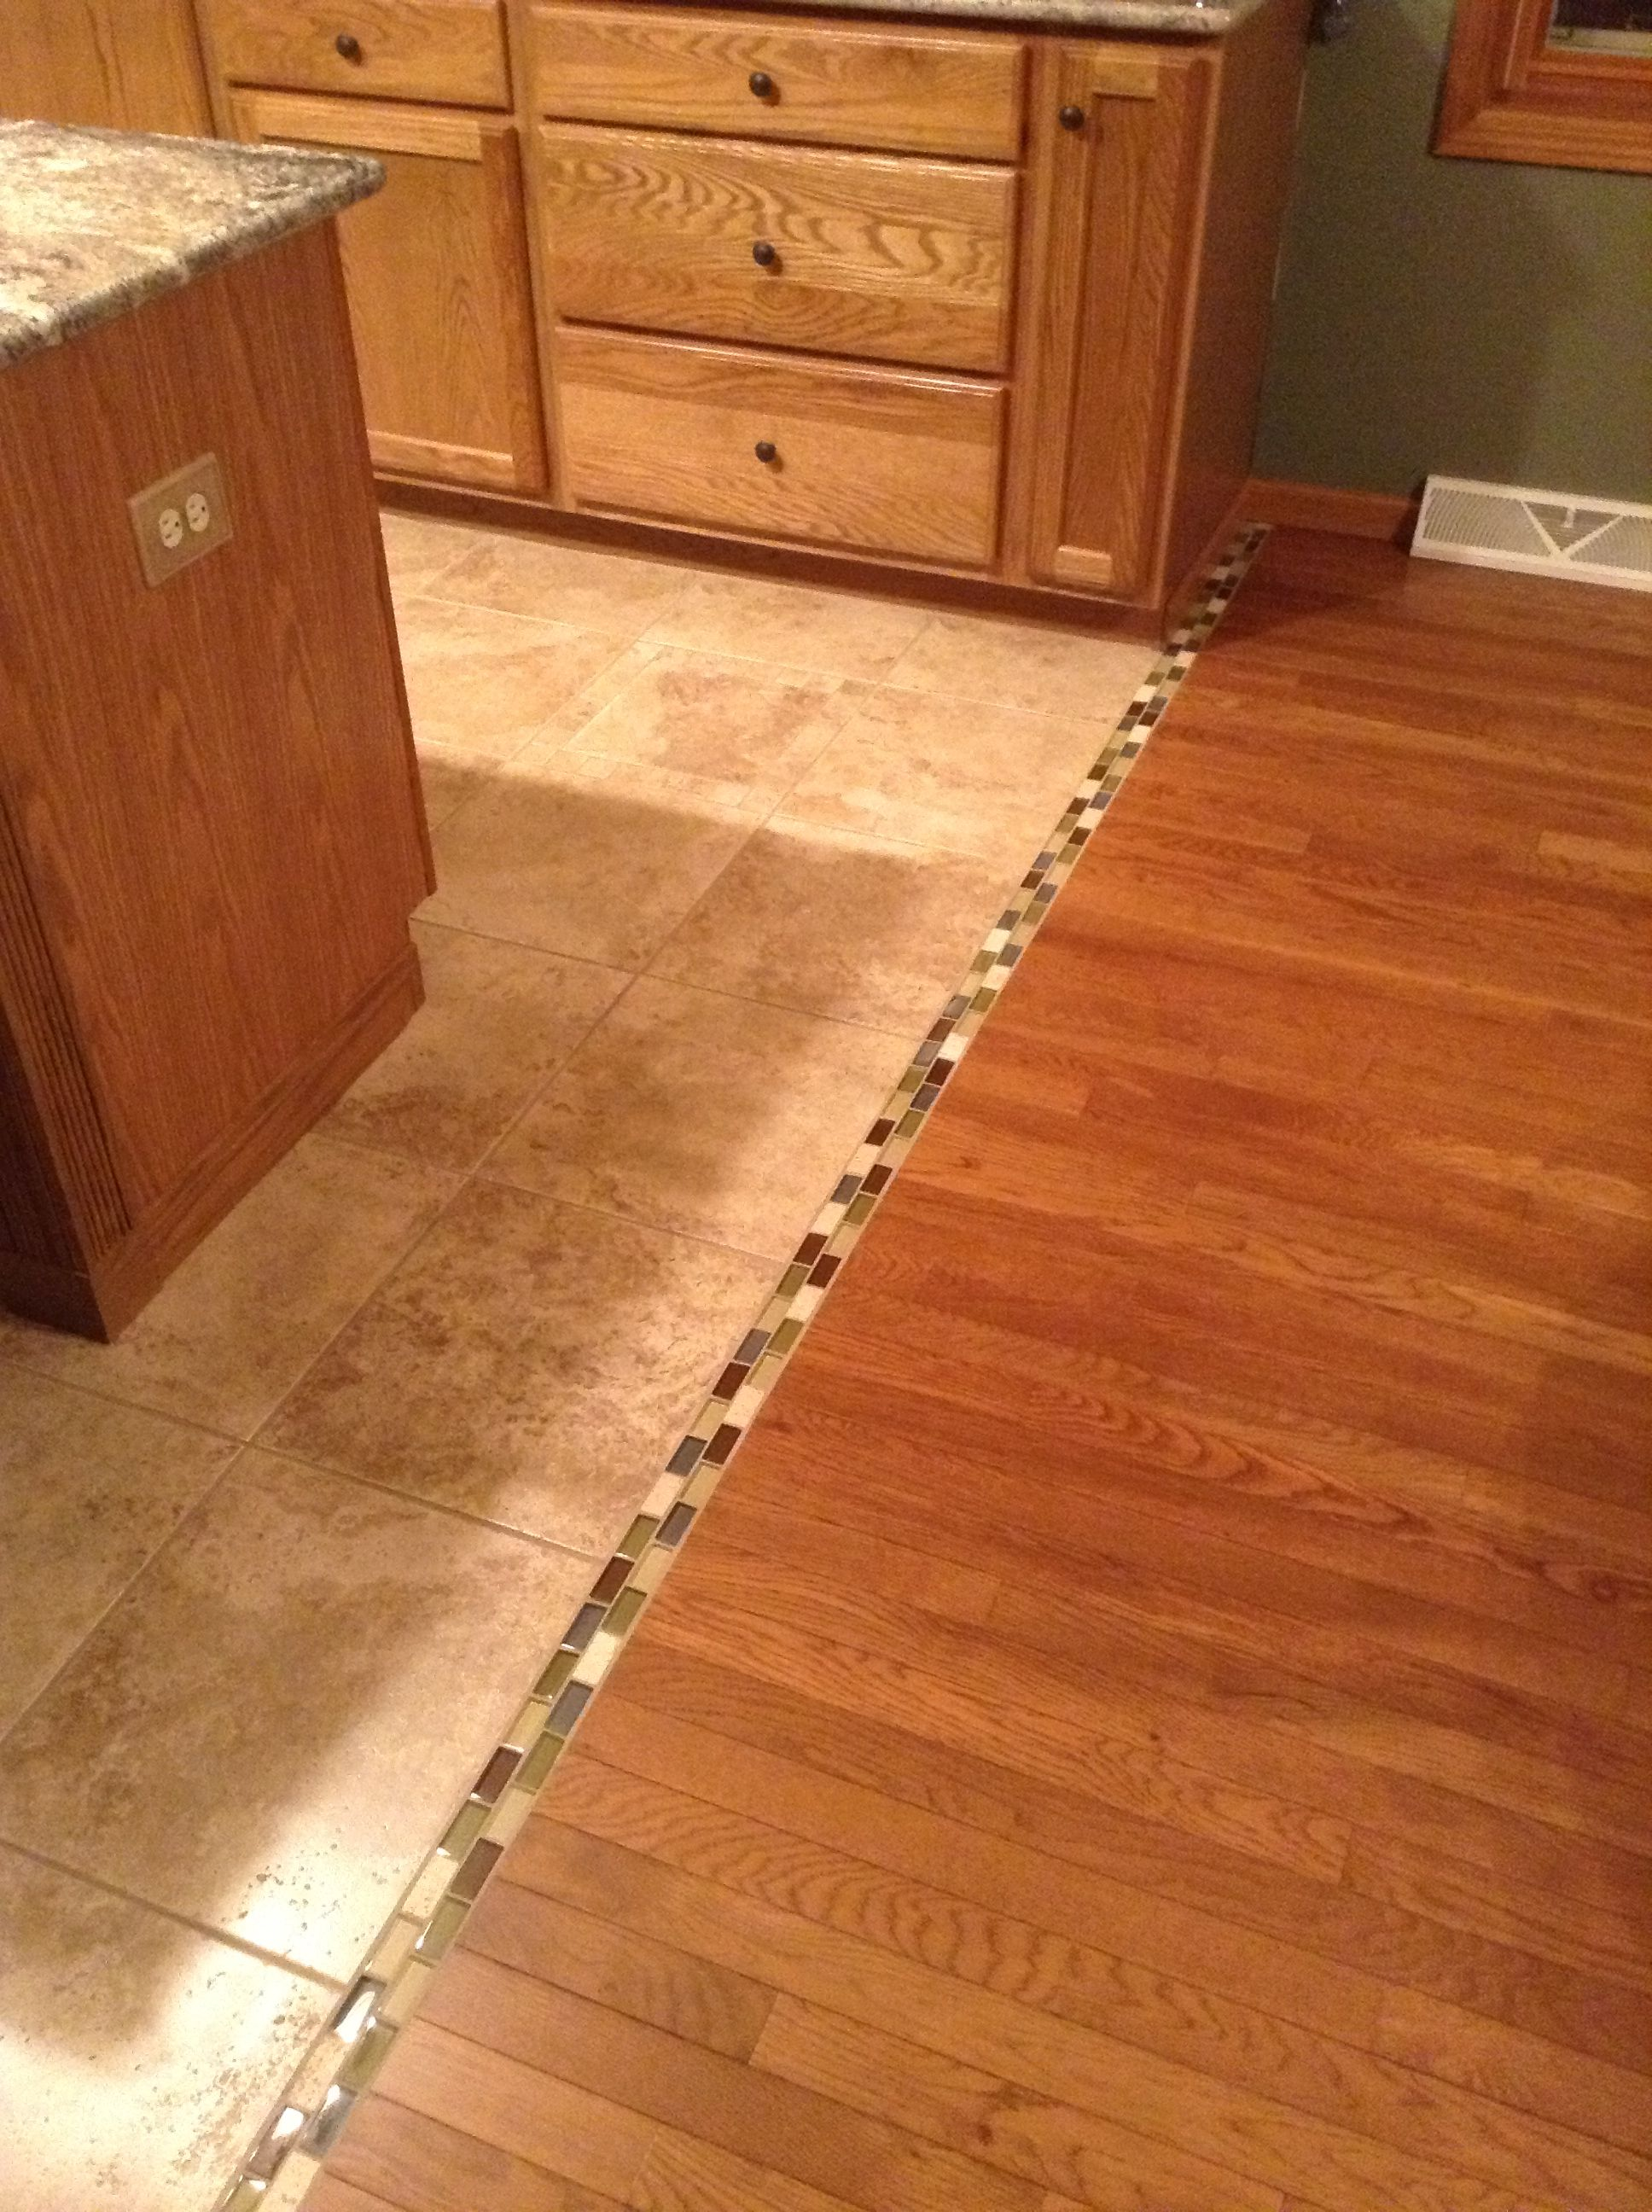 Transition Between Hardwood And Tile Floor Modern Kitchen Flooring Flooring Transition Flooring